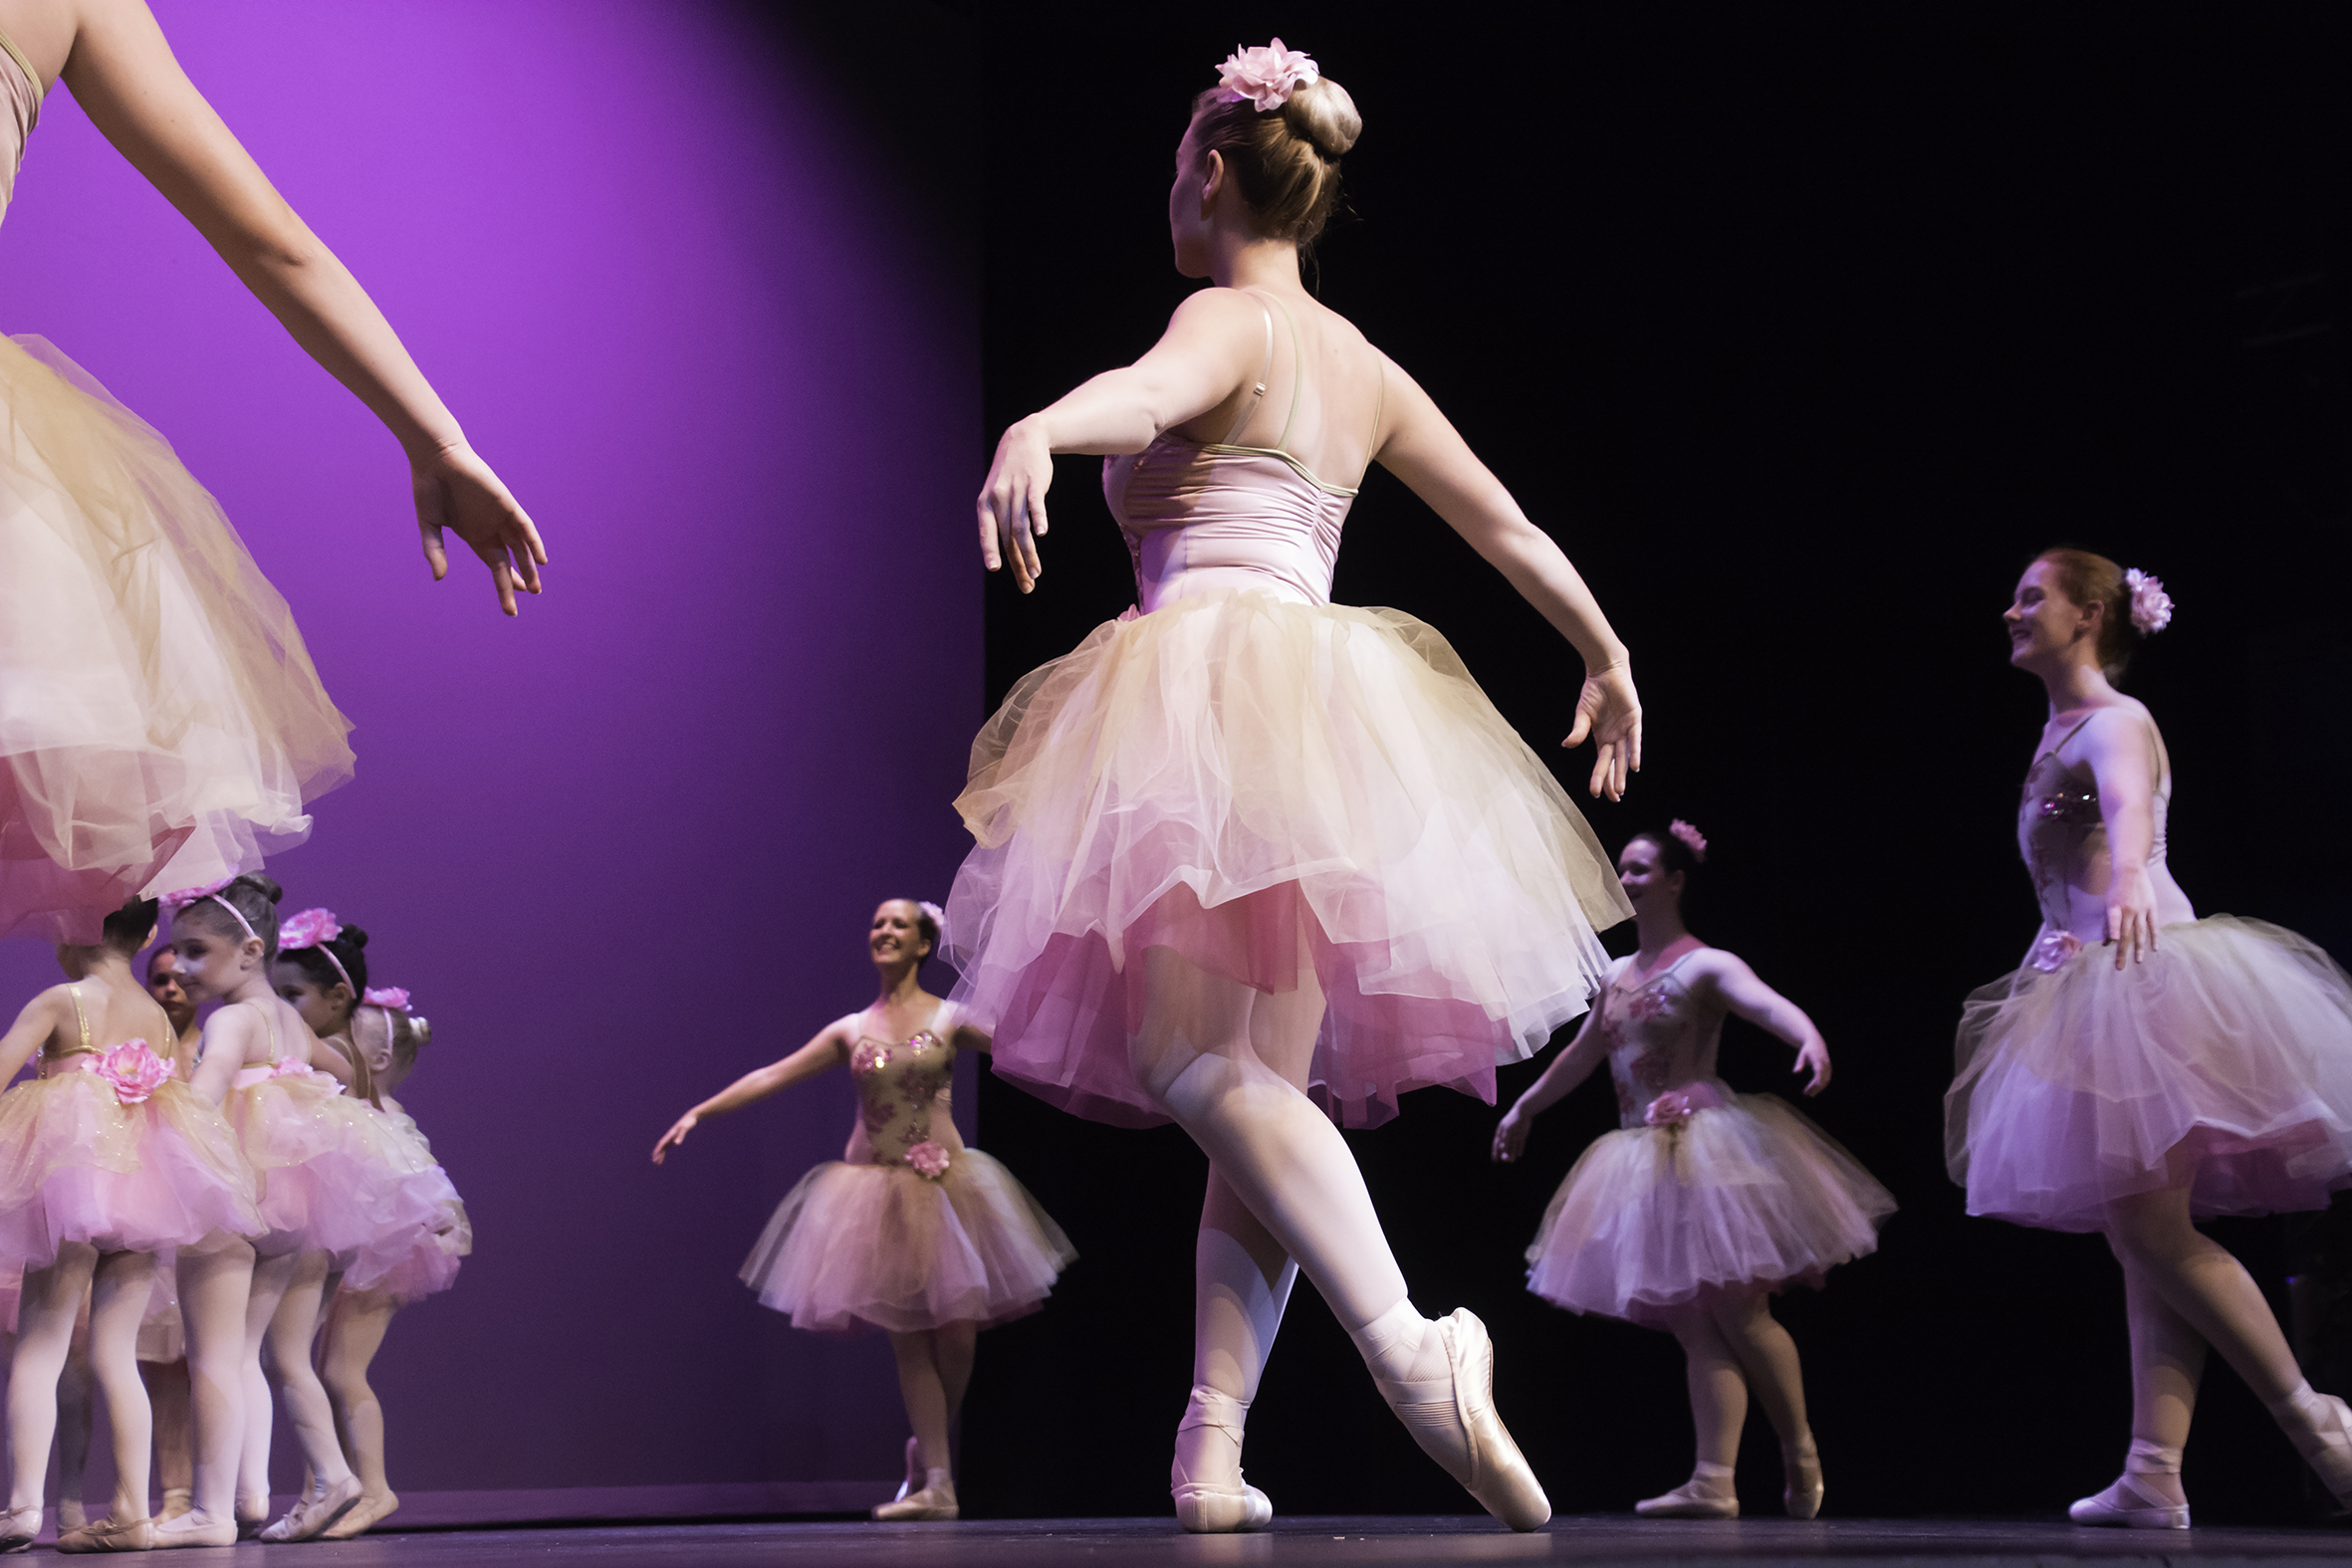 Senior and Junior classical ballet performance – Waltz of the Flowers